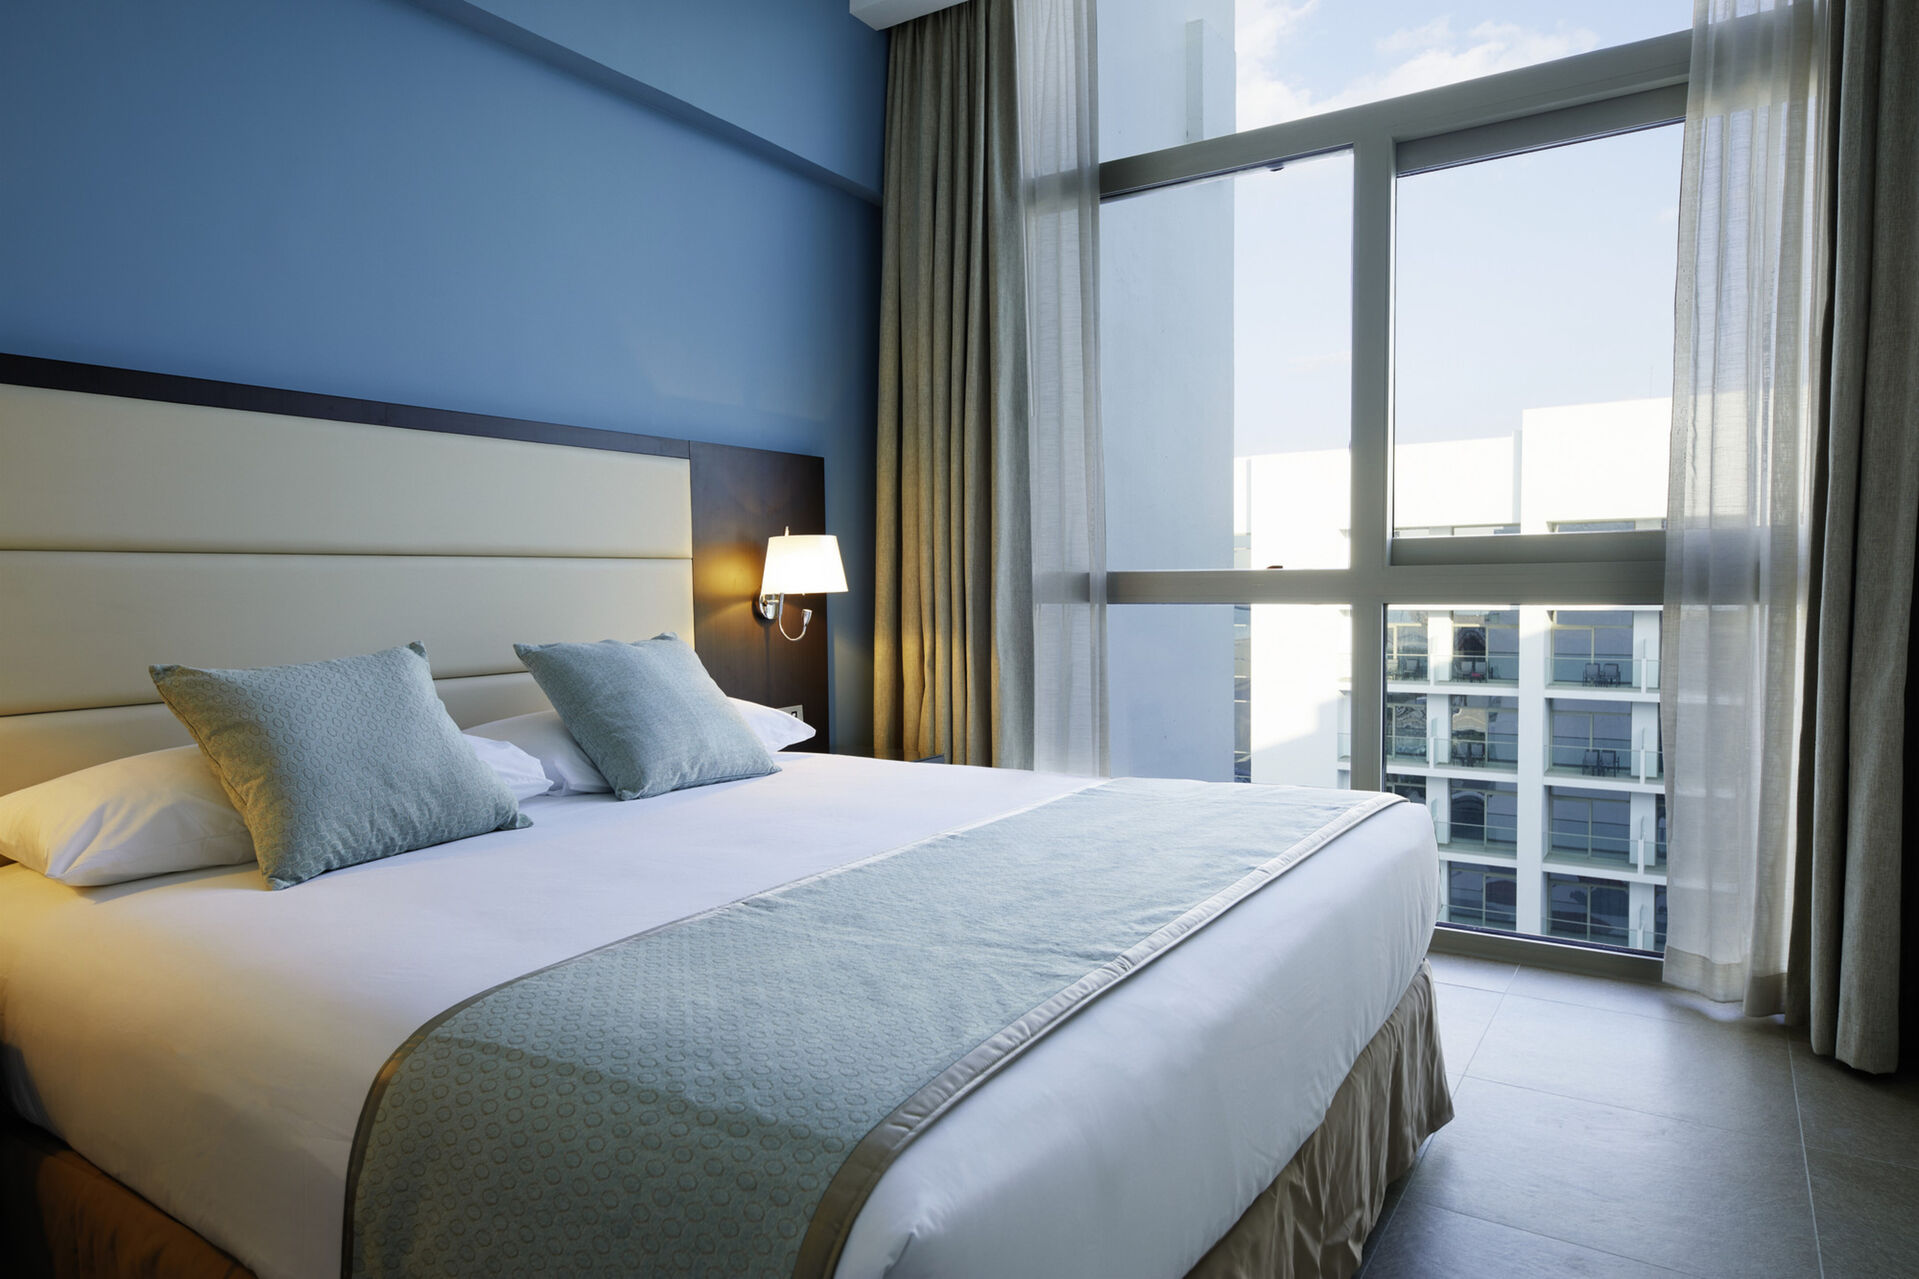 https://cms.satur.sk/data/imgs/tour_image/orig/dub_20_167-junior-suite-lateral-sea-view_second-bedroom-1939900.jpg